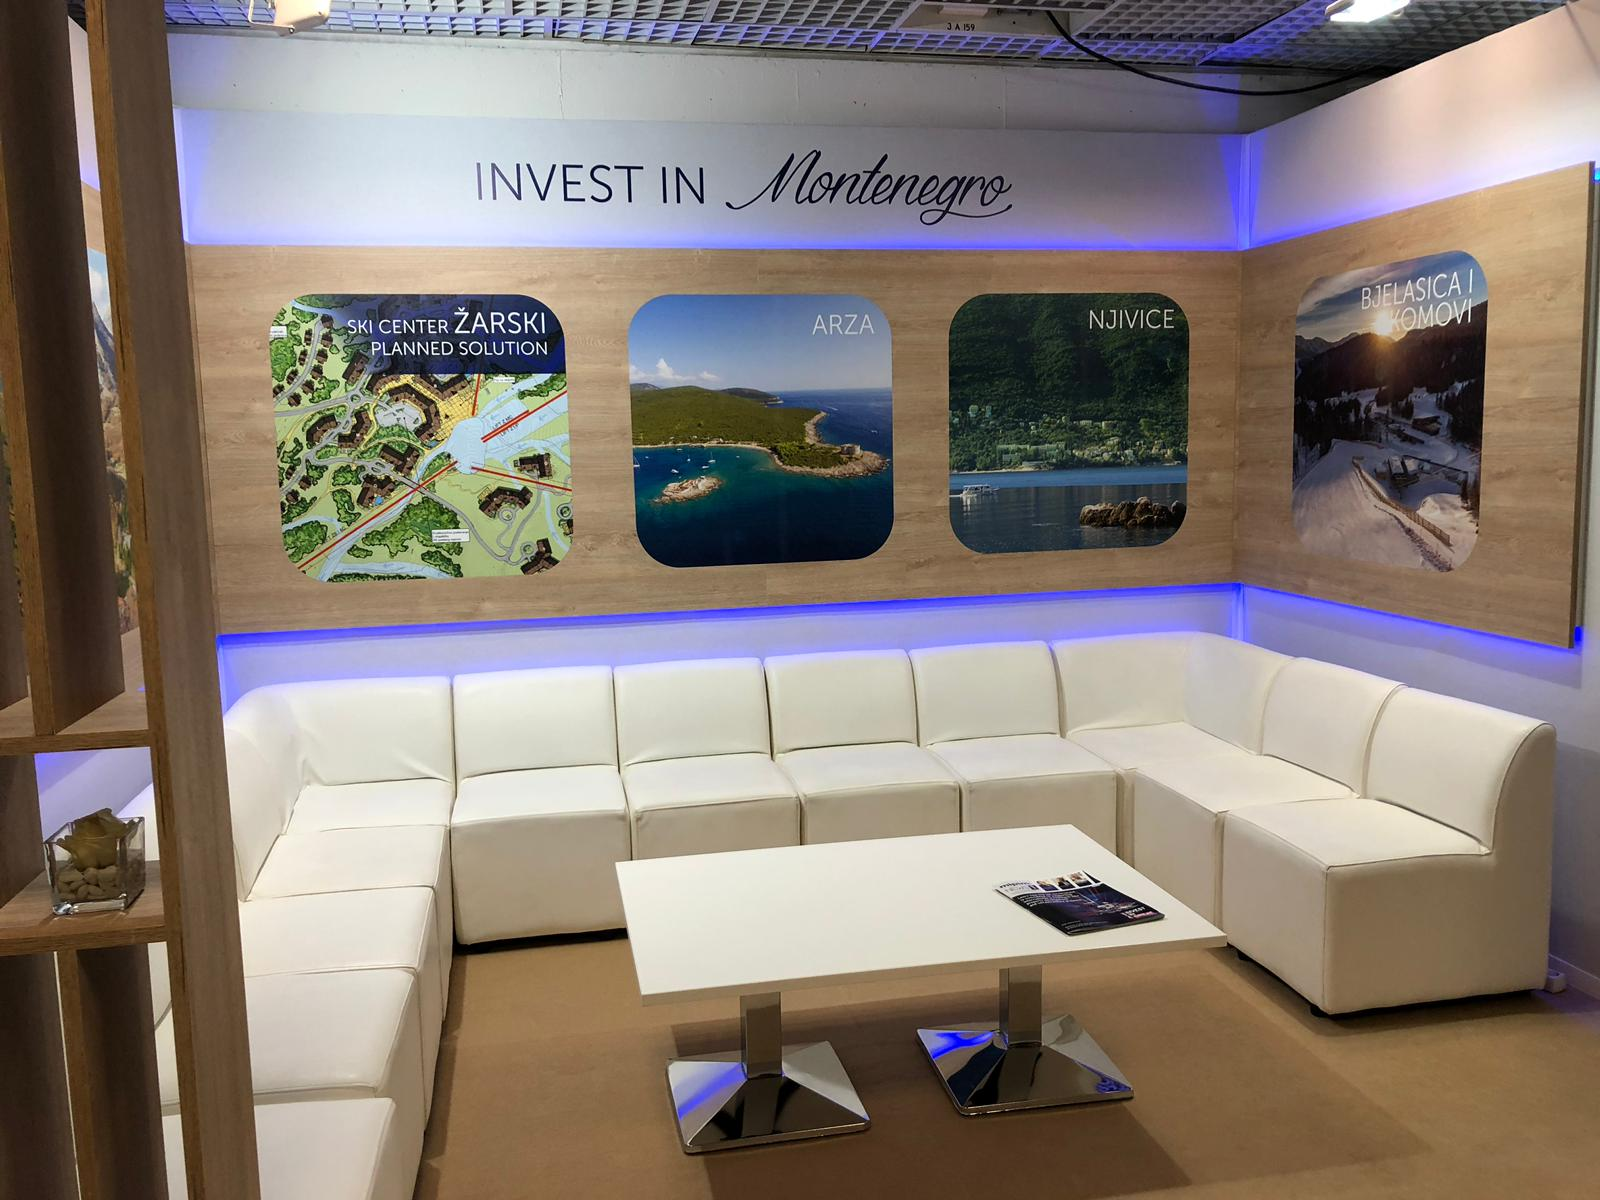 Trade show booth design in Cannes at MIPIM France for Invest in Montenegro